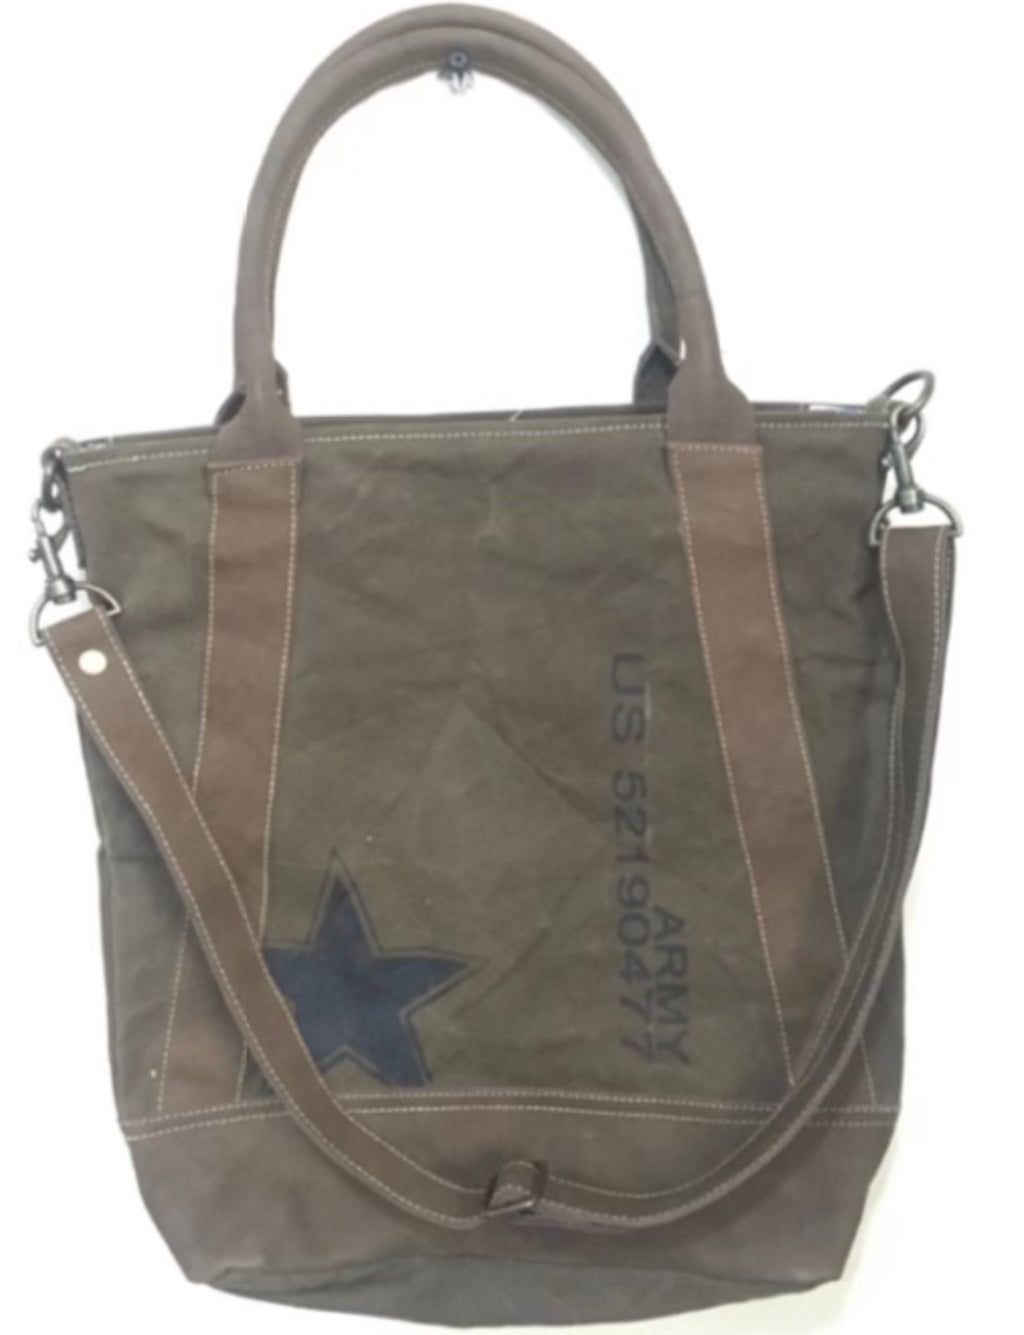 US ARMY TOTE - The Wall Kids, Inc.